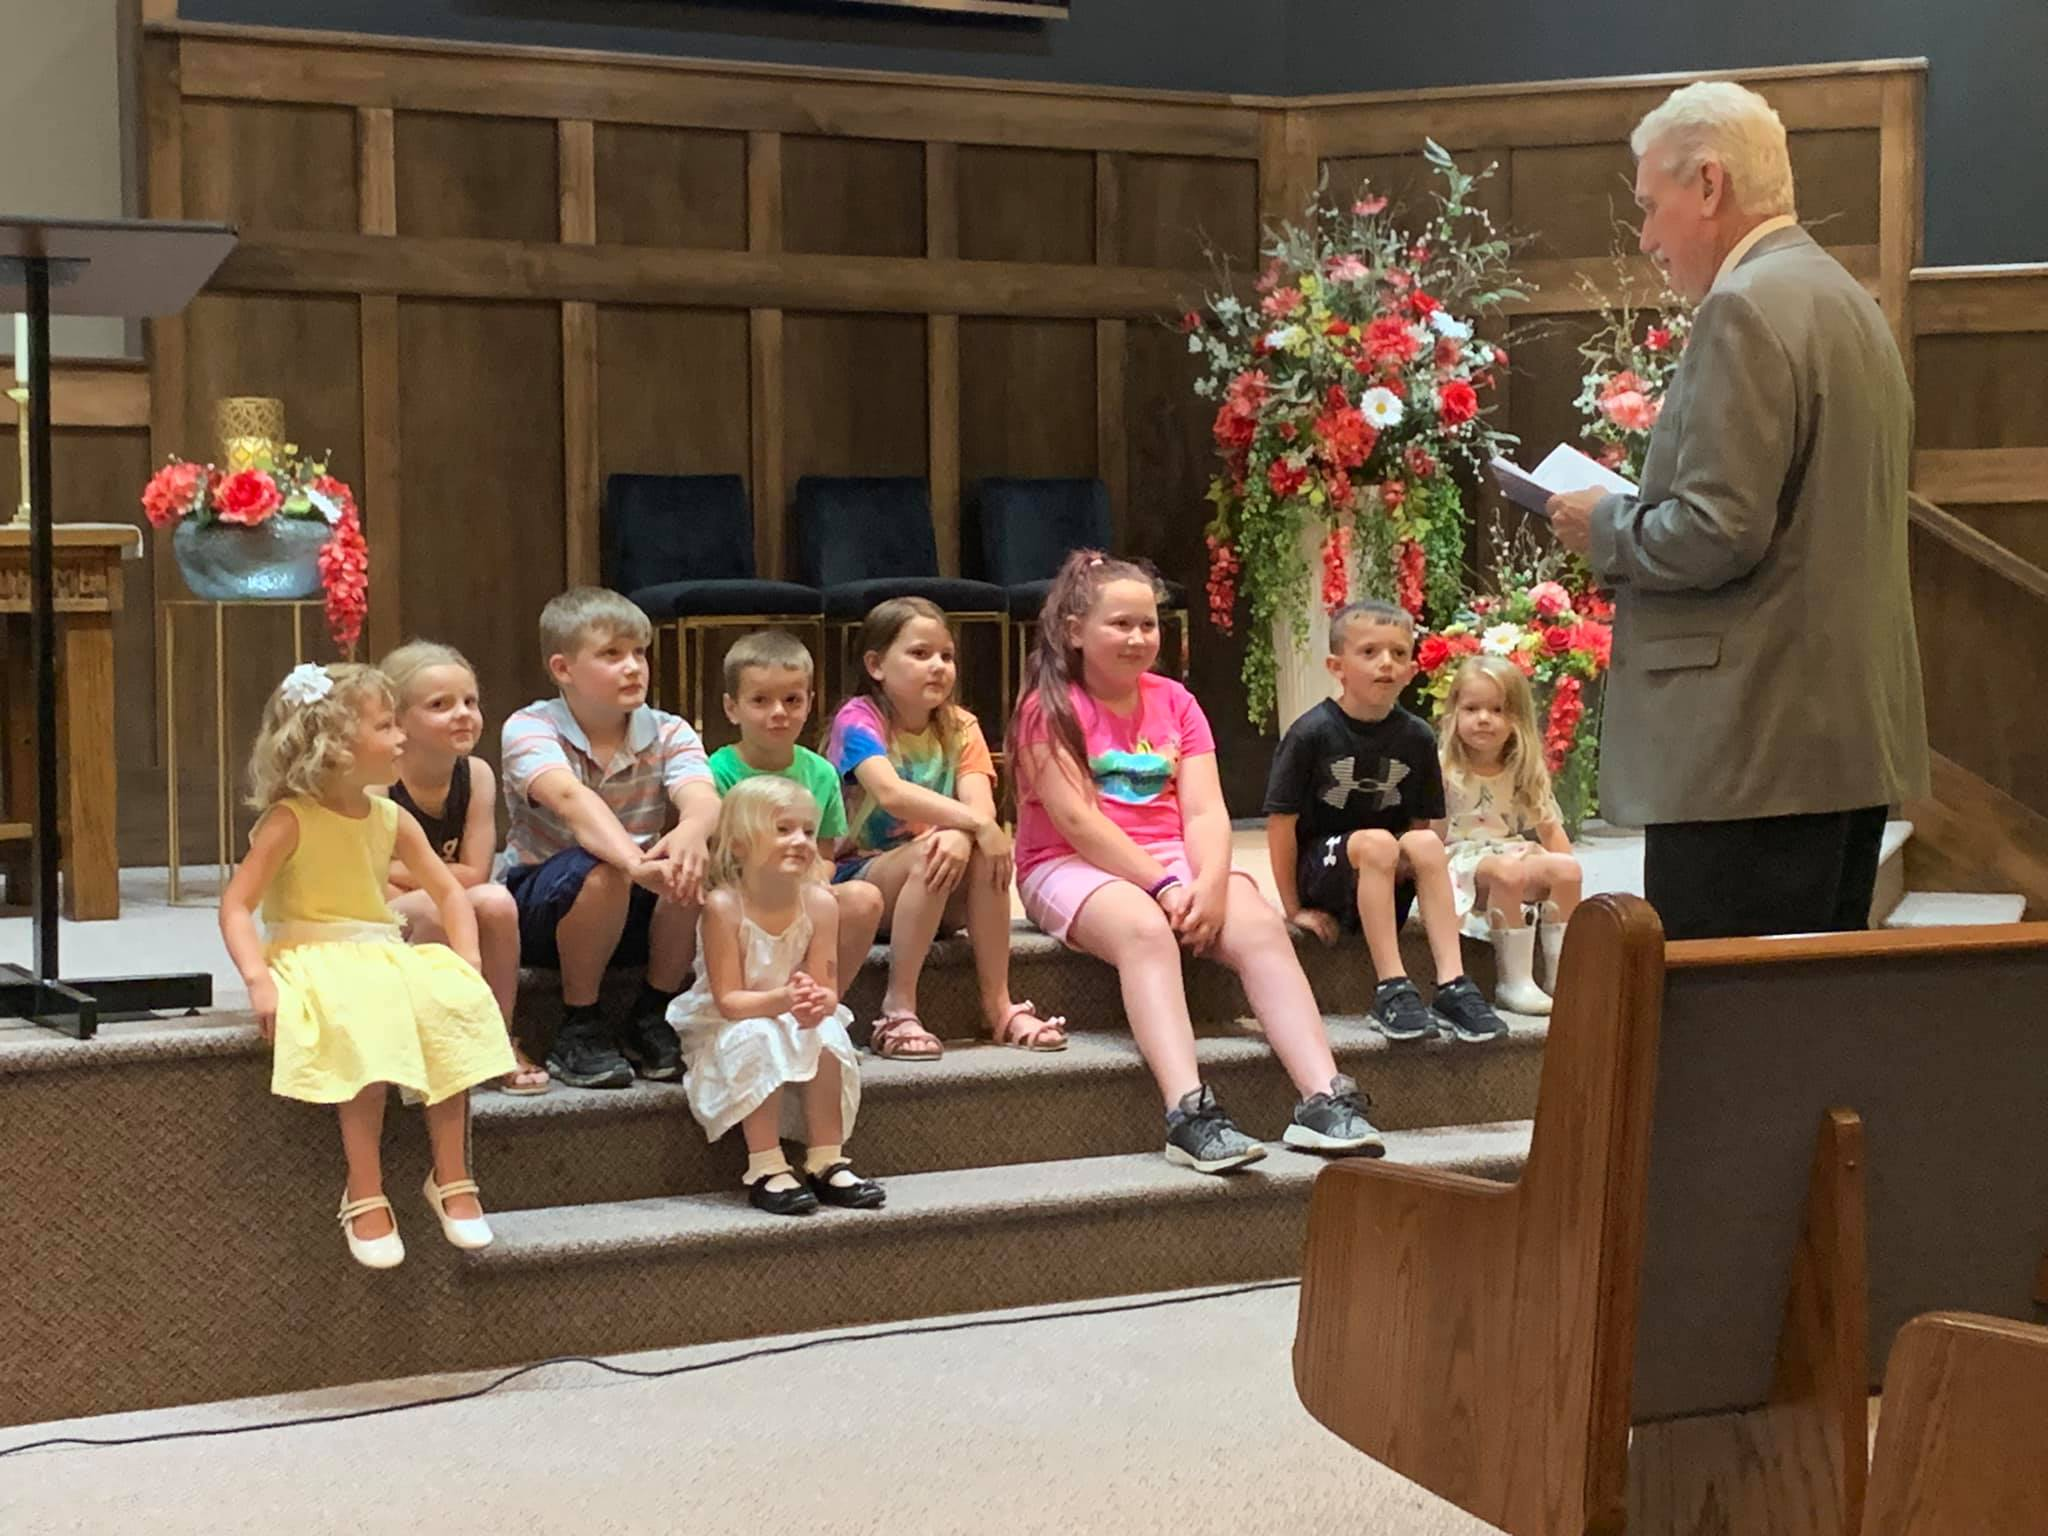 children's church time during service in girard illinois